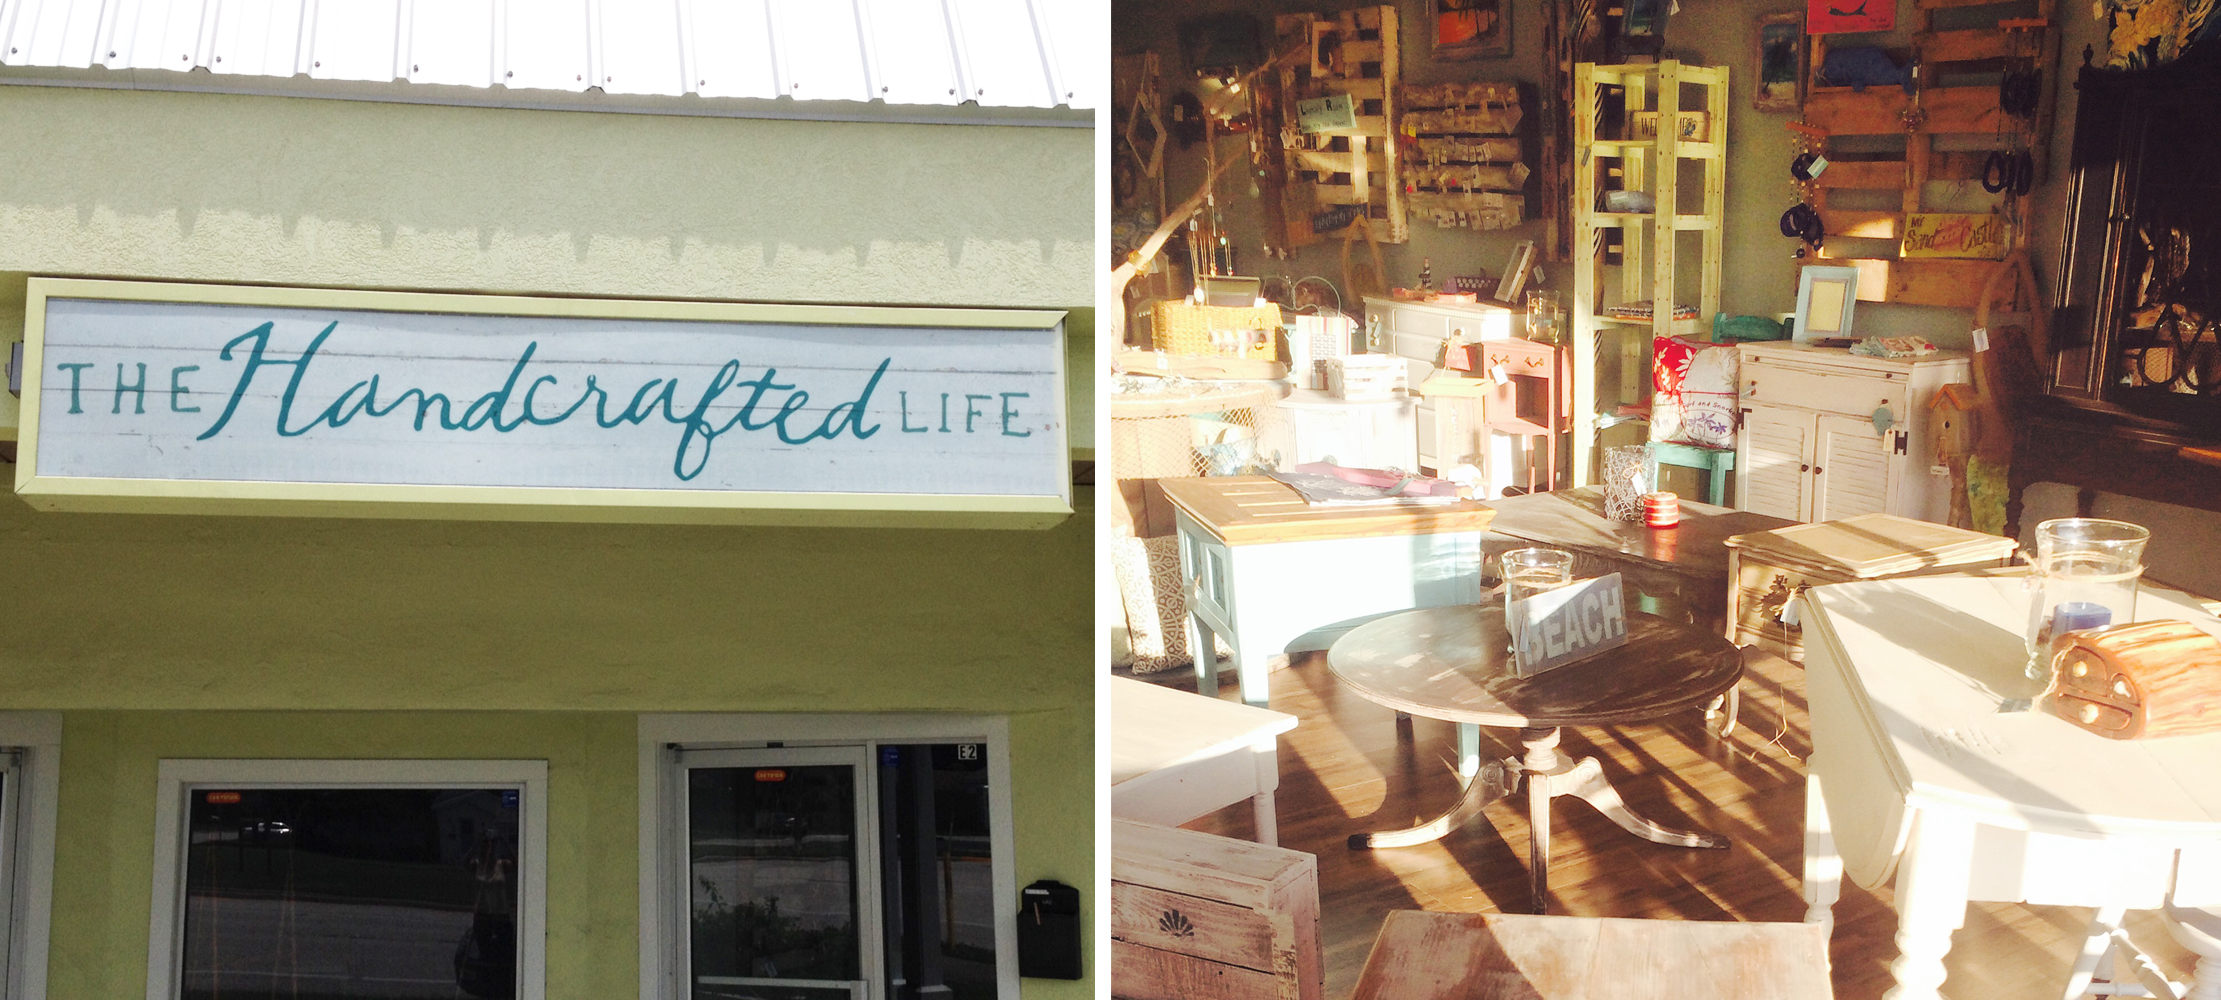 The Handcrafted Life Signage and Store Interior – Branding by Just Make Things